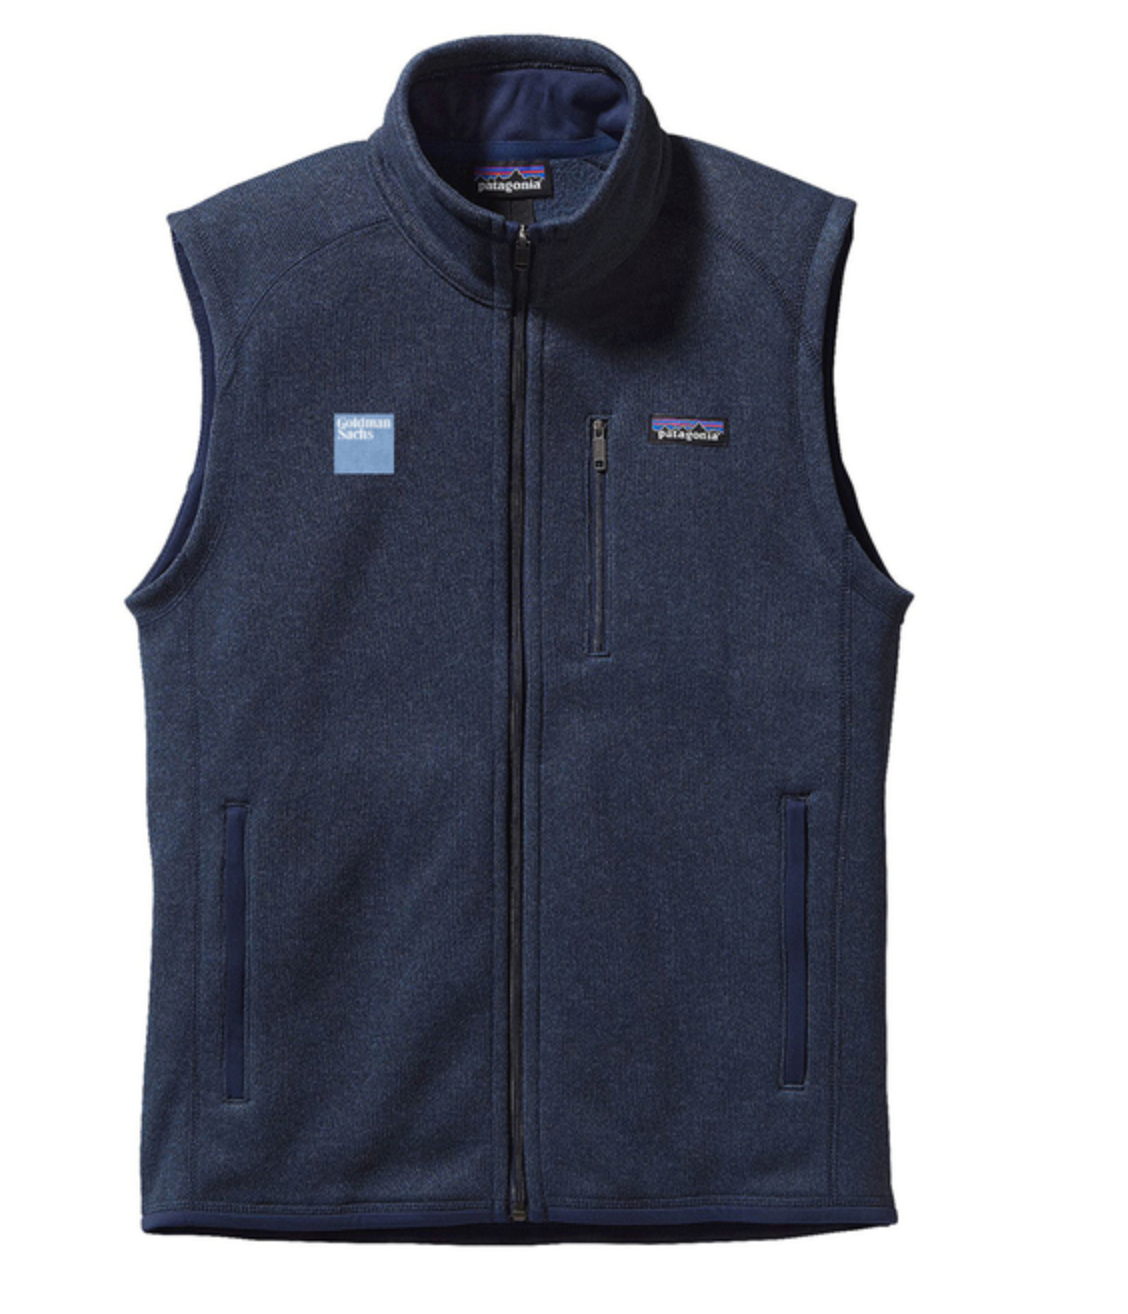 8e45b13438c2  Authentic Goldman Sachs Patagonia Fleece Vest (Better Sweater)  Patagonia   Sweater  Hot  Trending  Fashion  Shop  Clothing  Trend  Popular  Buy  ad  ...